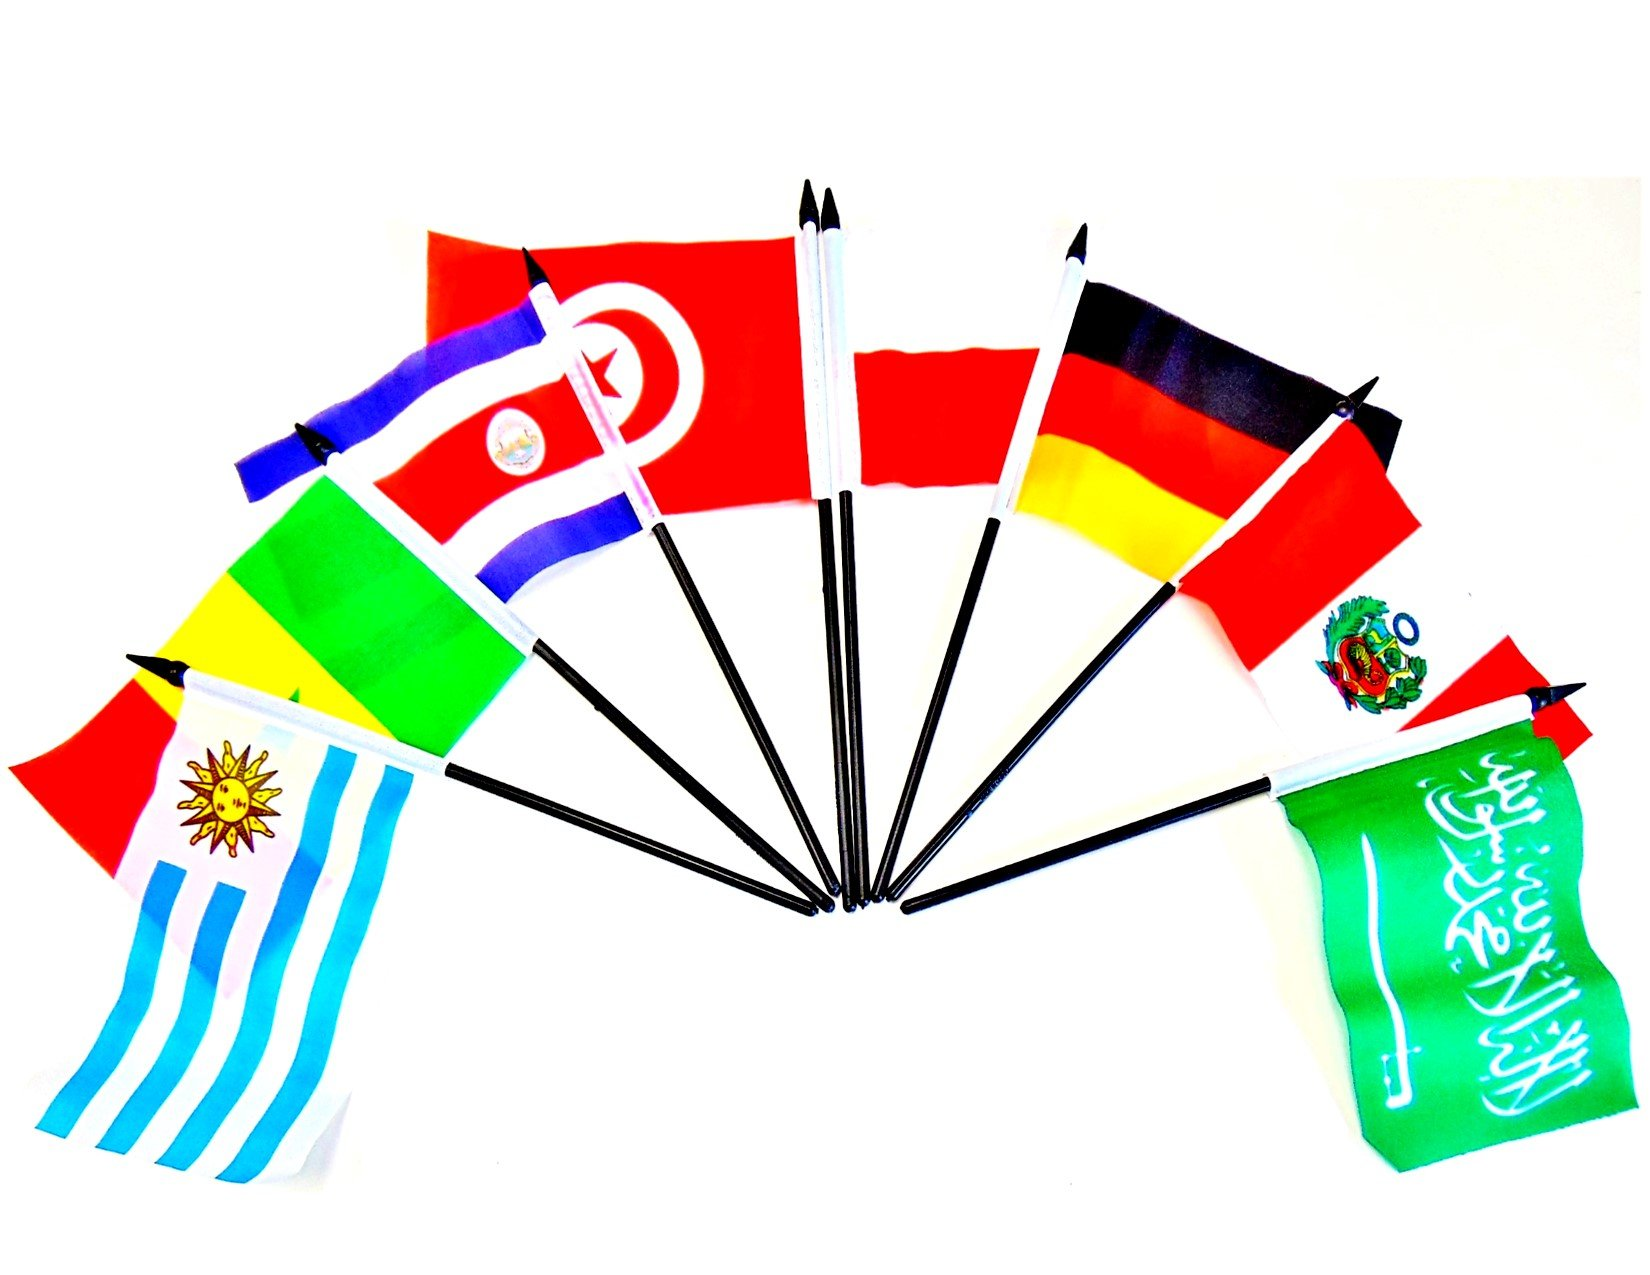 WORLD CUP 2018 SOCCER FLAGS 2018- SET of 32 Polyester 4''x6'' Flags, One Flag for Each Team Competing For the Cup, 4x6 Miniature Desk & Table Flags, Small Mini Stick Flags by World Flags Direct (Image #3)